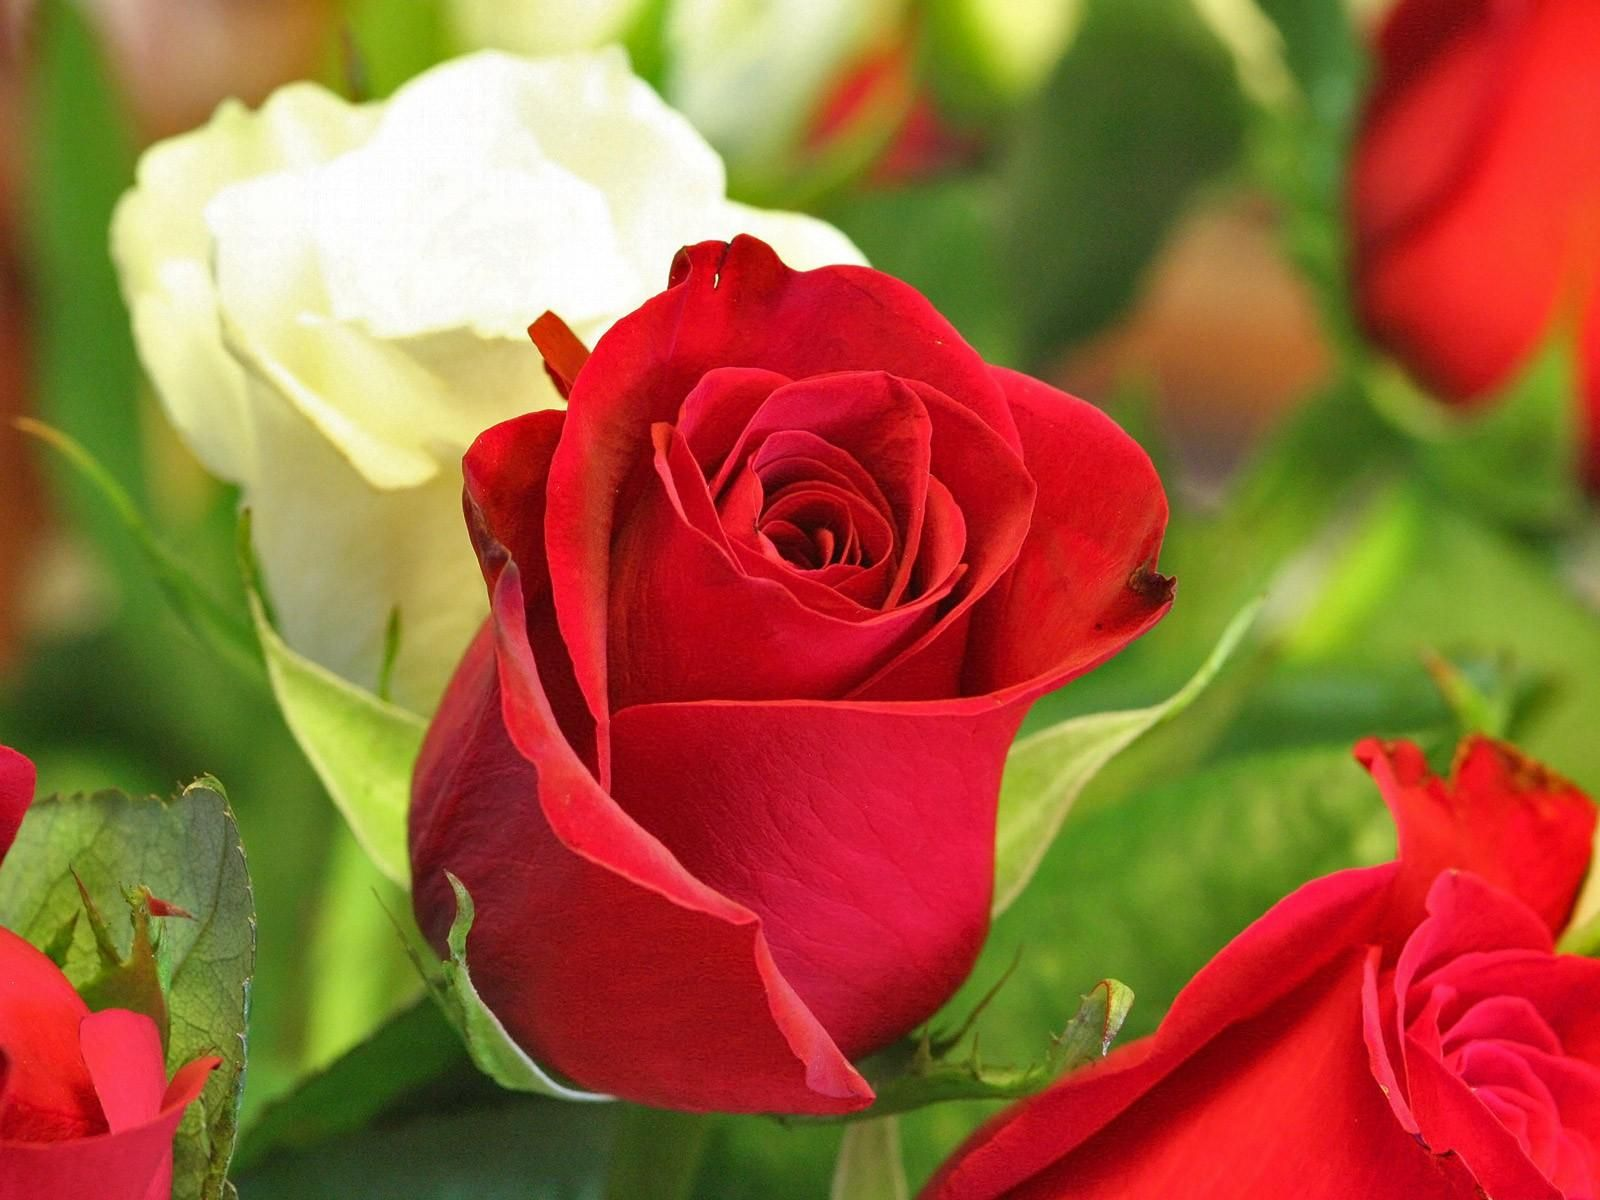 images of roses | Email This BlogThis! Share to Twitter Share to Facebook Share to .